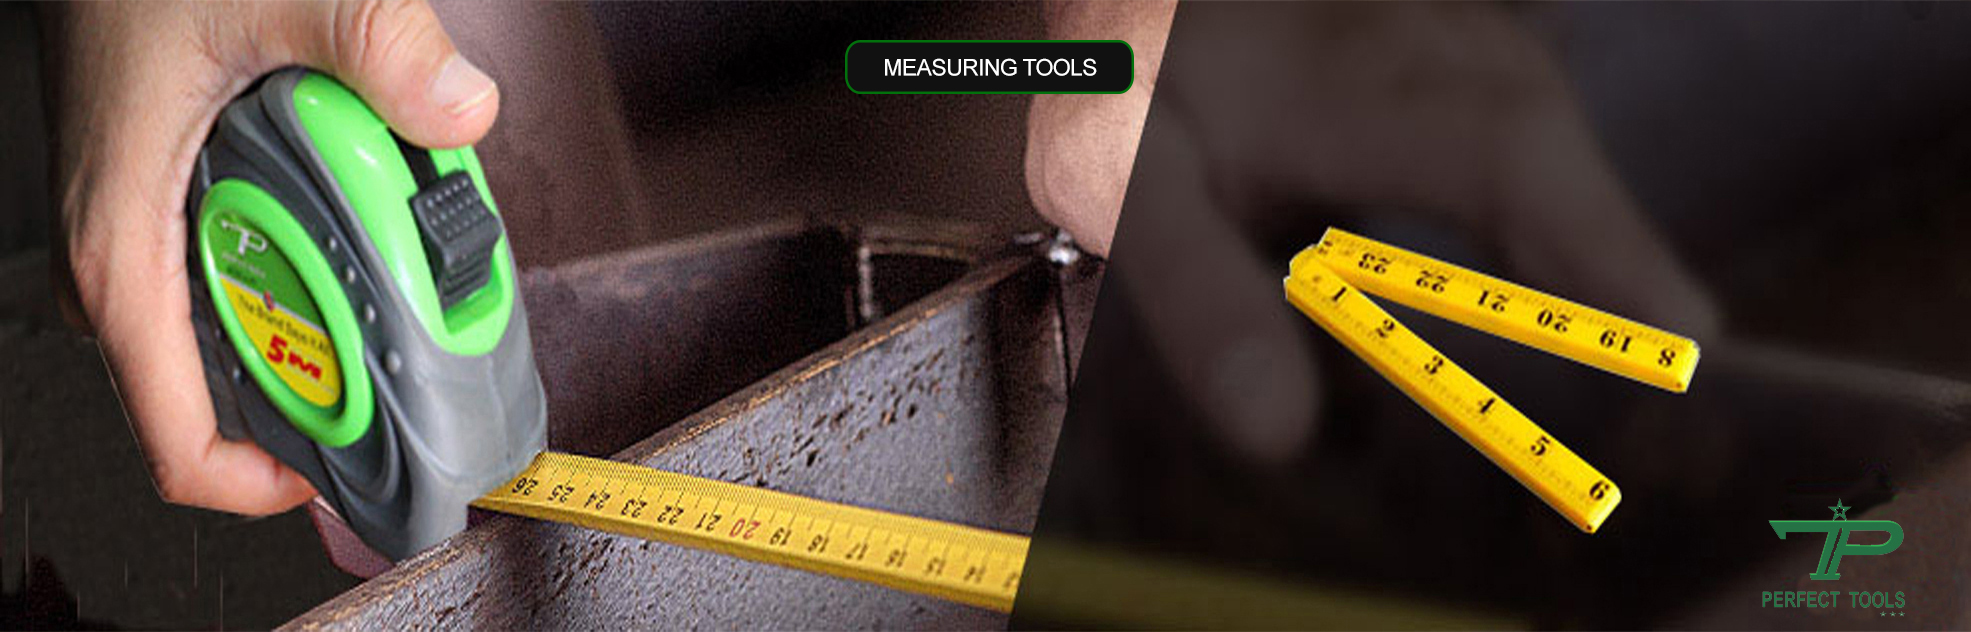 perfect tools measuring tools